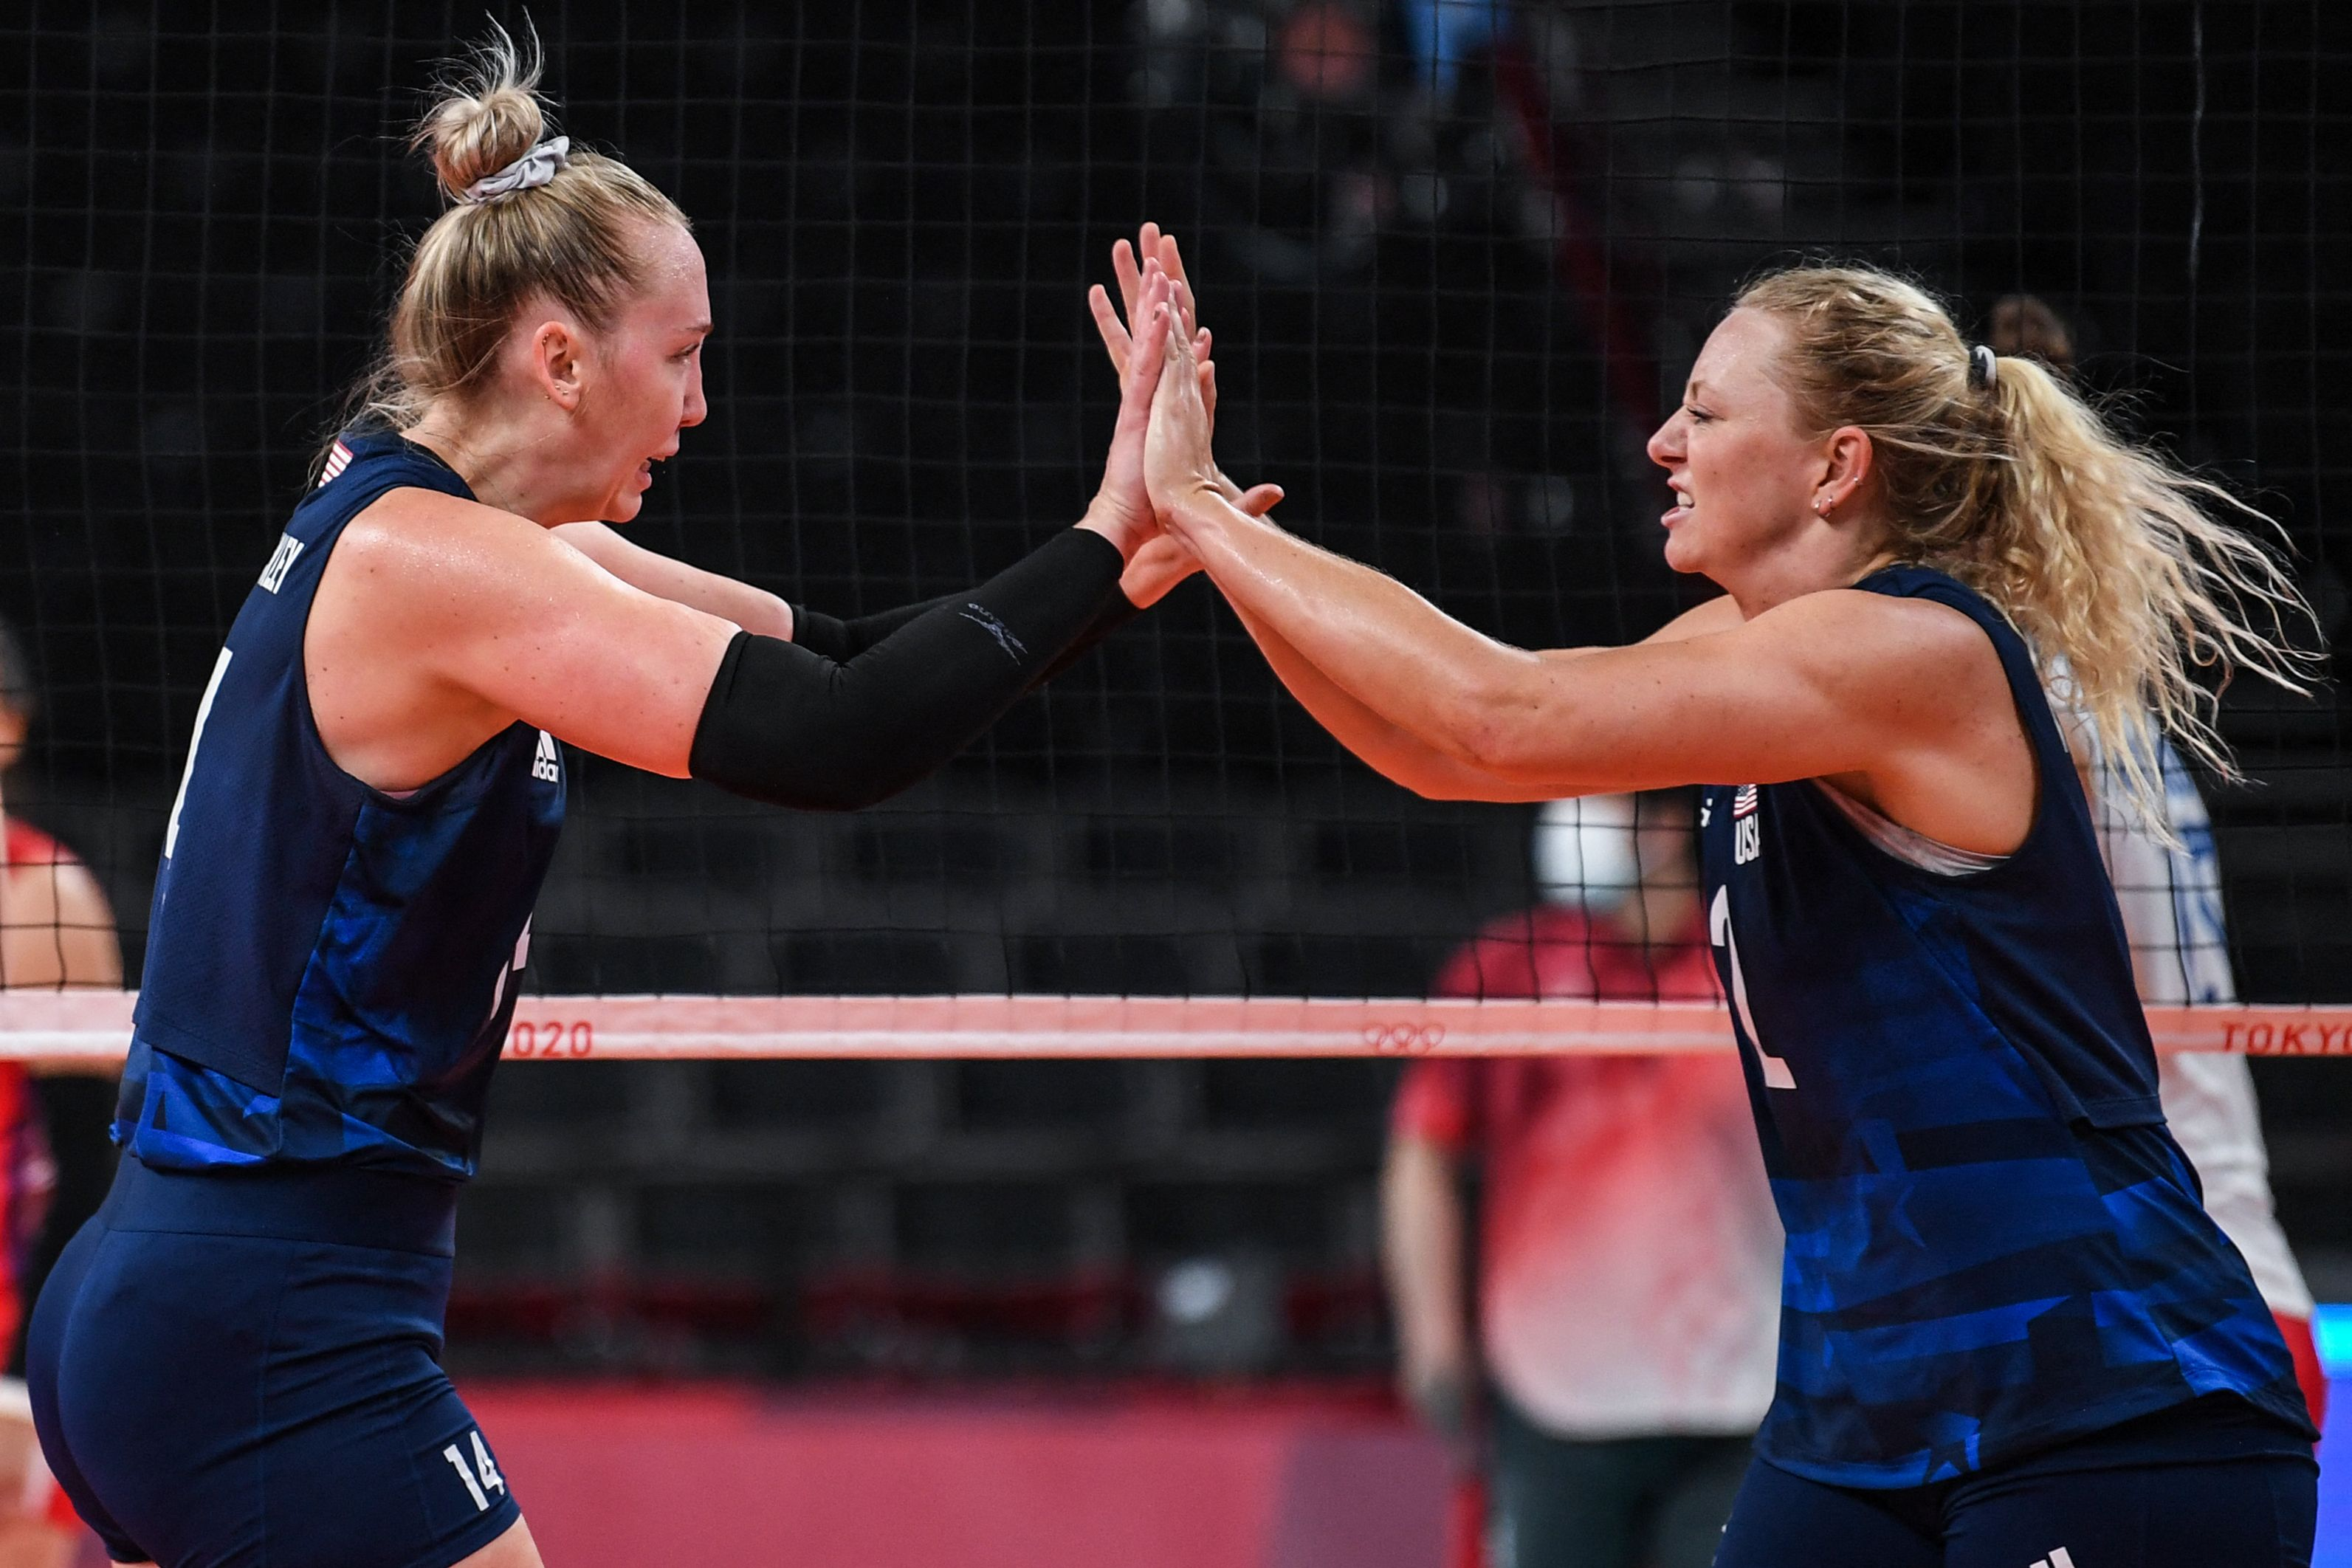 Michelle Bartsch-Hackley and Jordyn Poulter react after a point in the women's semi-final volleyball match between USA and Serbia during the Tokyo 2020 Olympic Games at Ariake Arena in Tokyo on August 6, 2021.